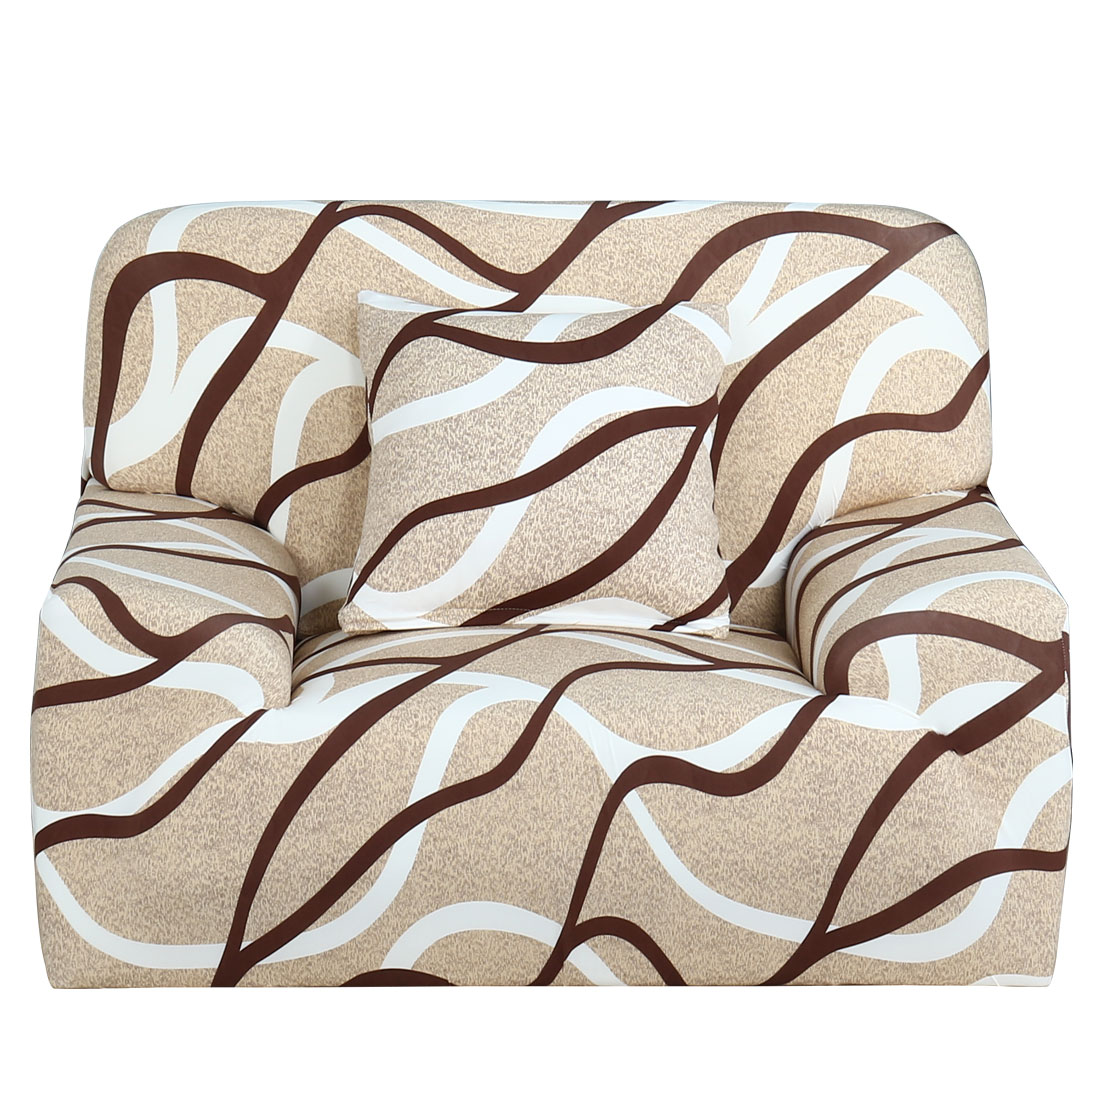 Household Polyester Geometric Pattern Elastic Sofa Chair Cover Slipcover Protector 35-55 Inch